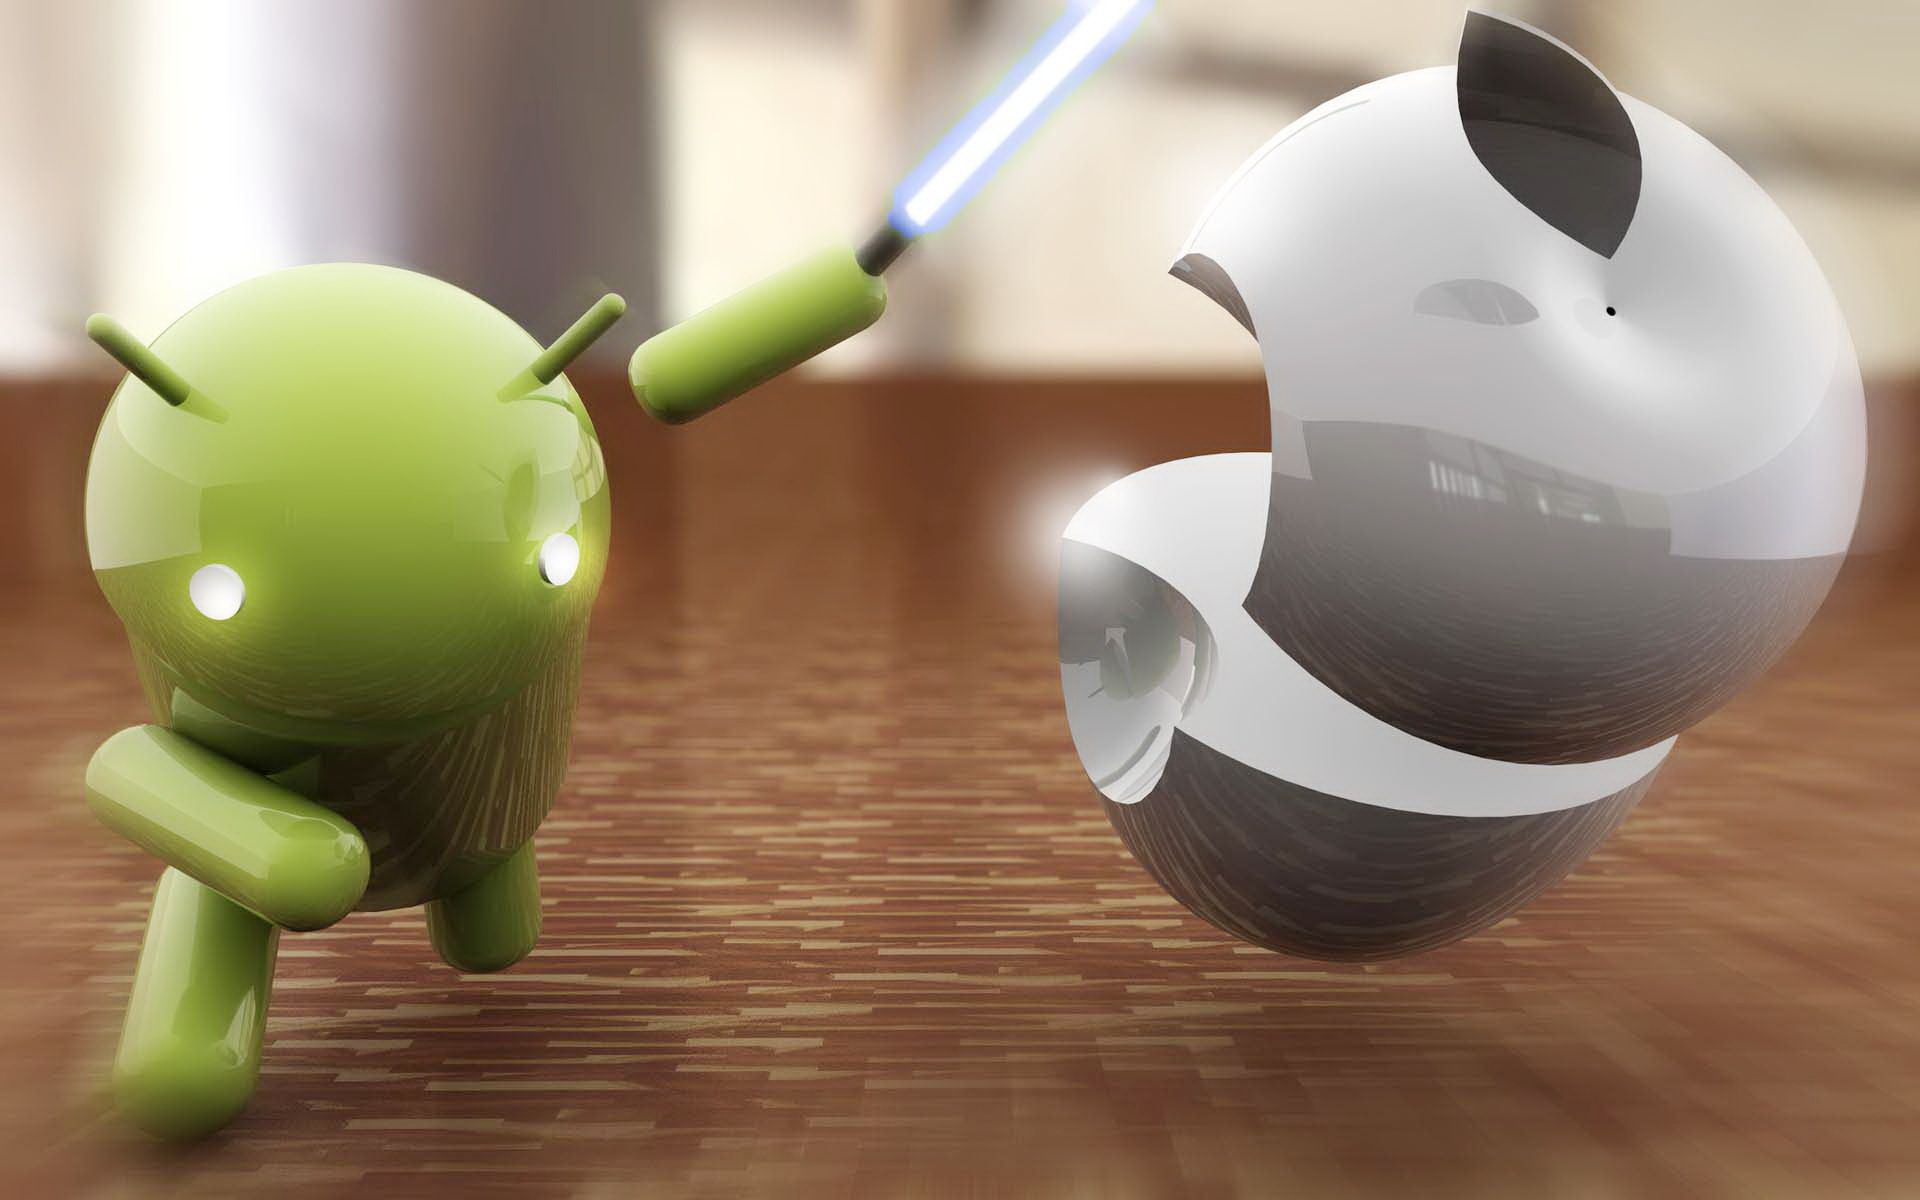 android vs iphone which to buy android or iphone tablets getting to decide on